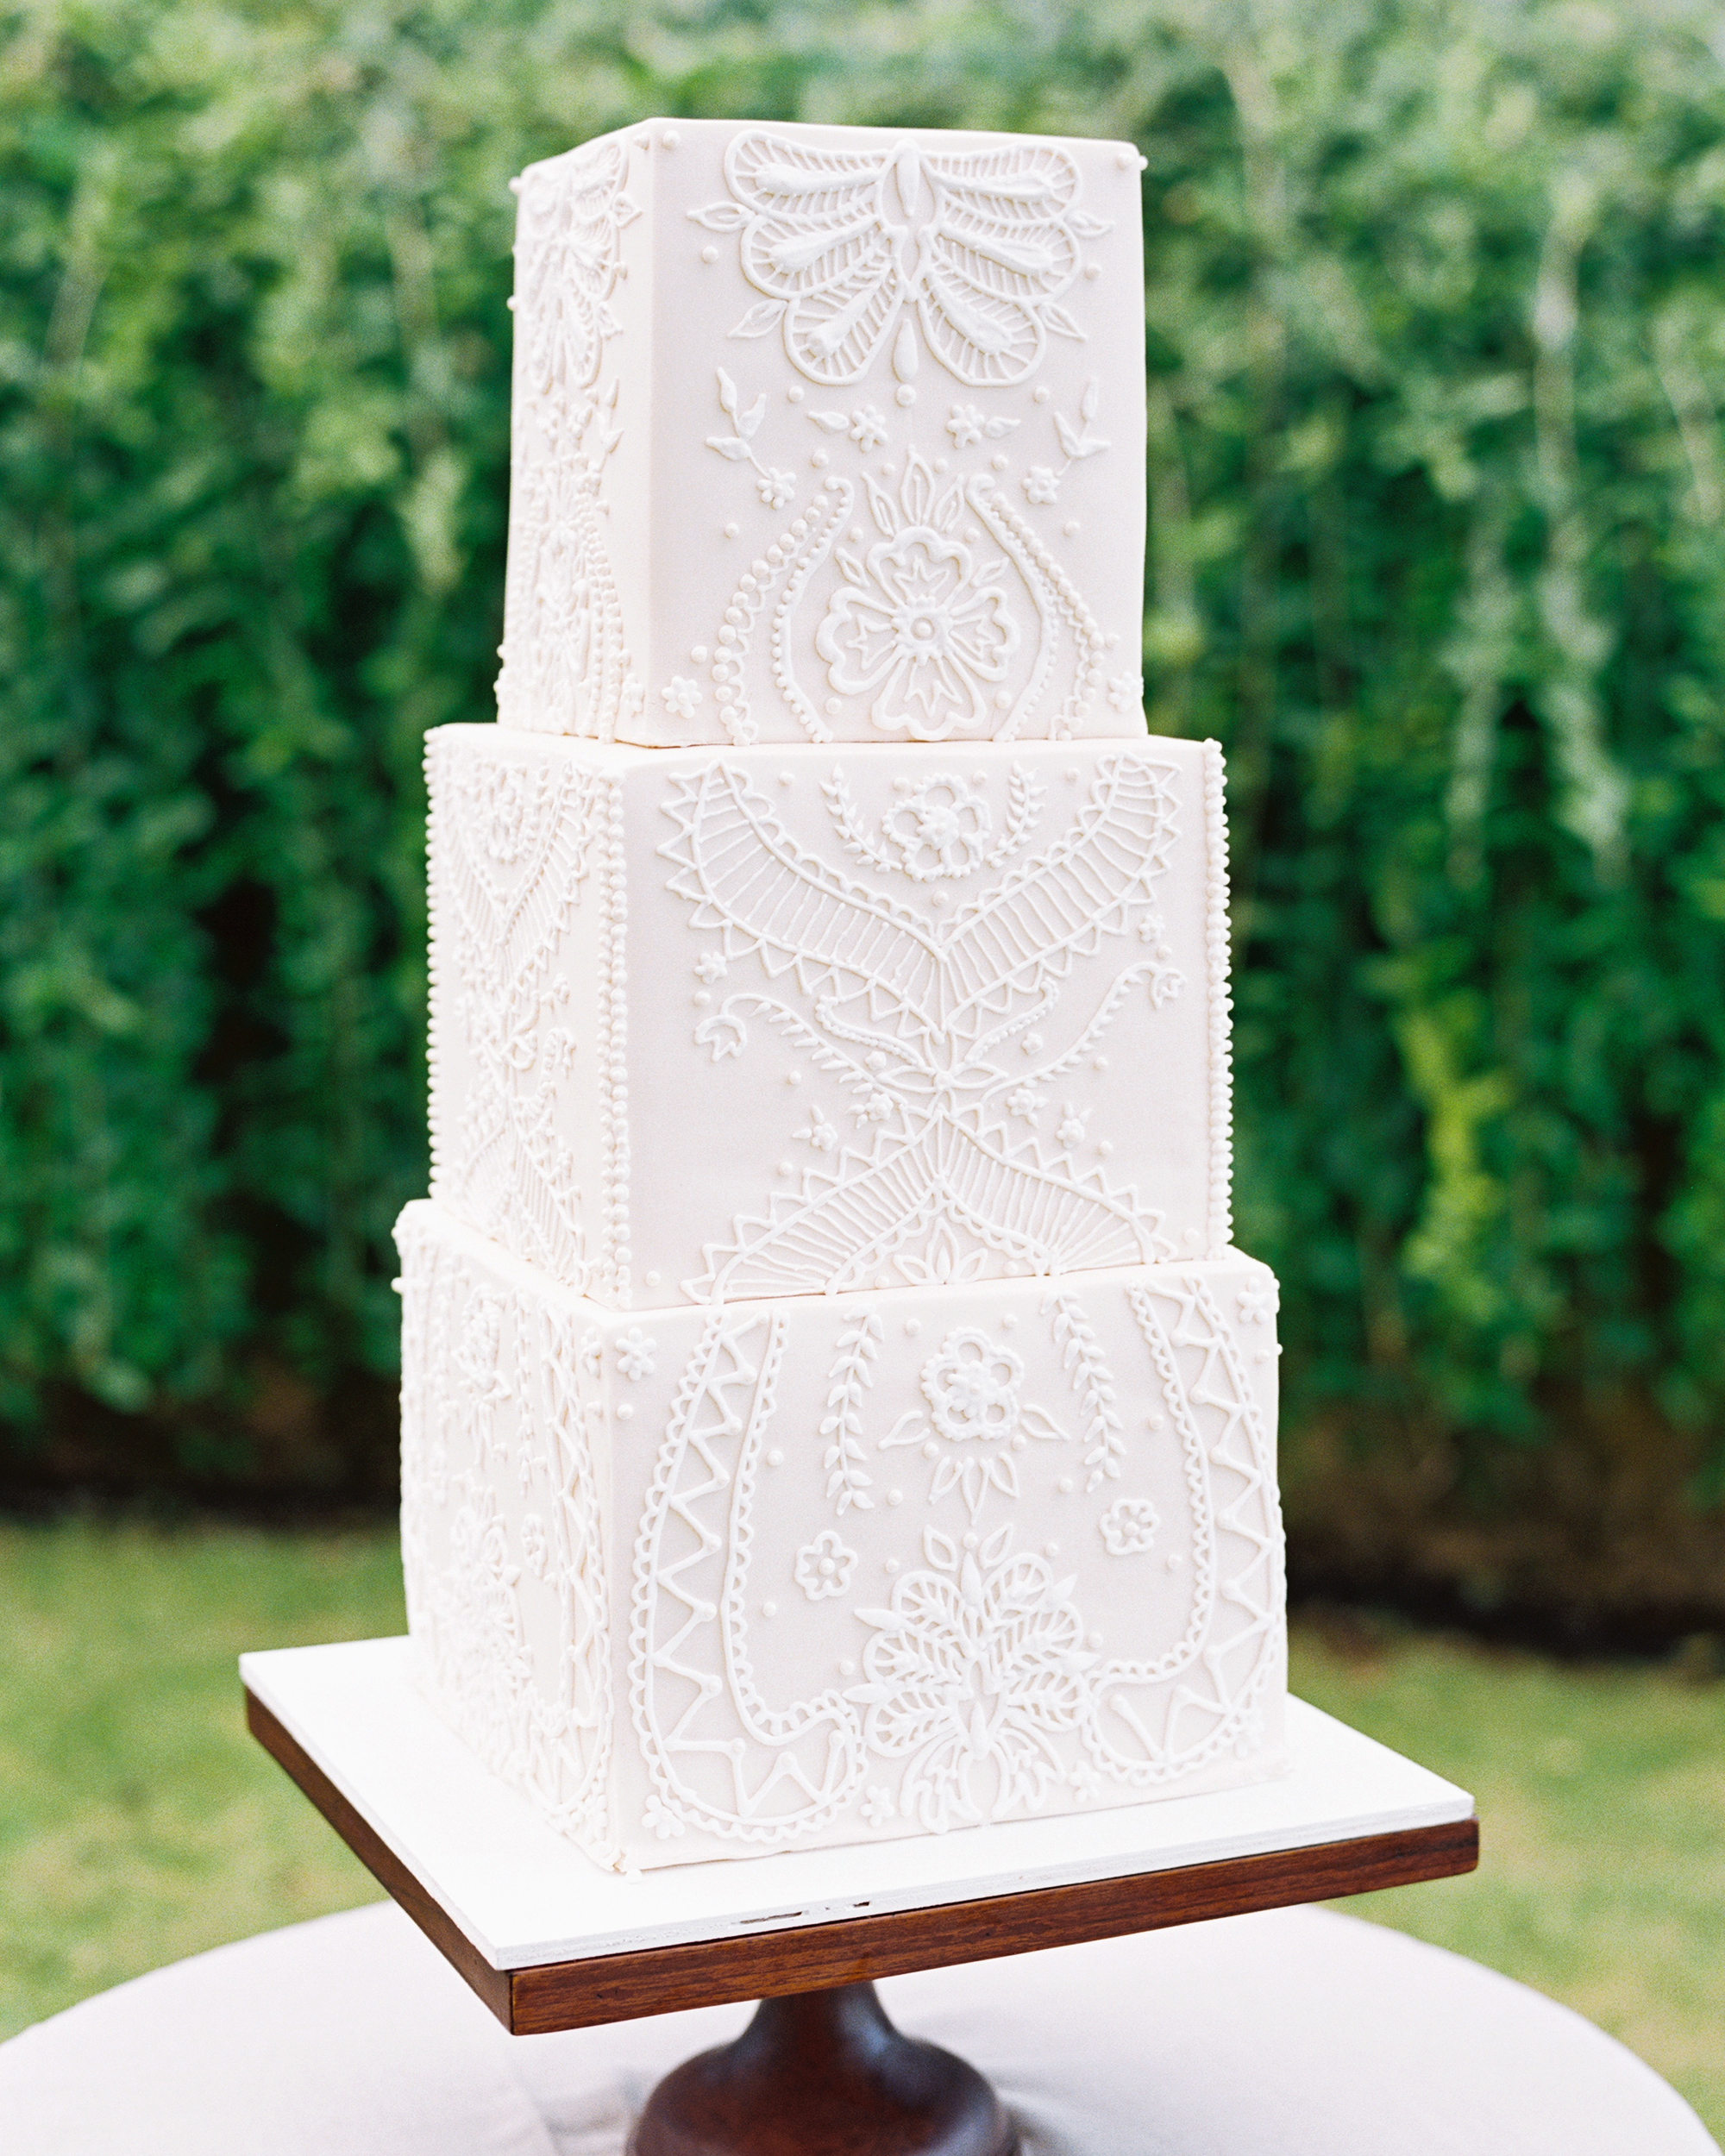 cubed wedding textured lace white cake